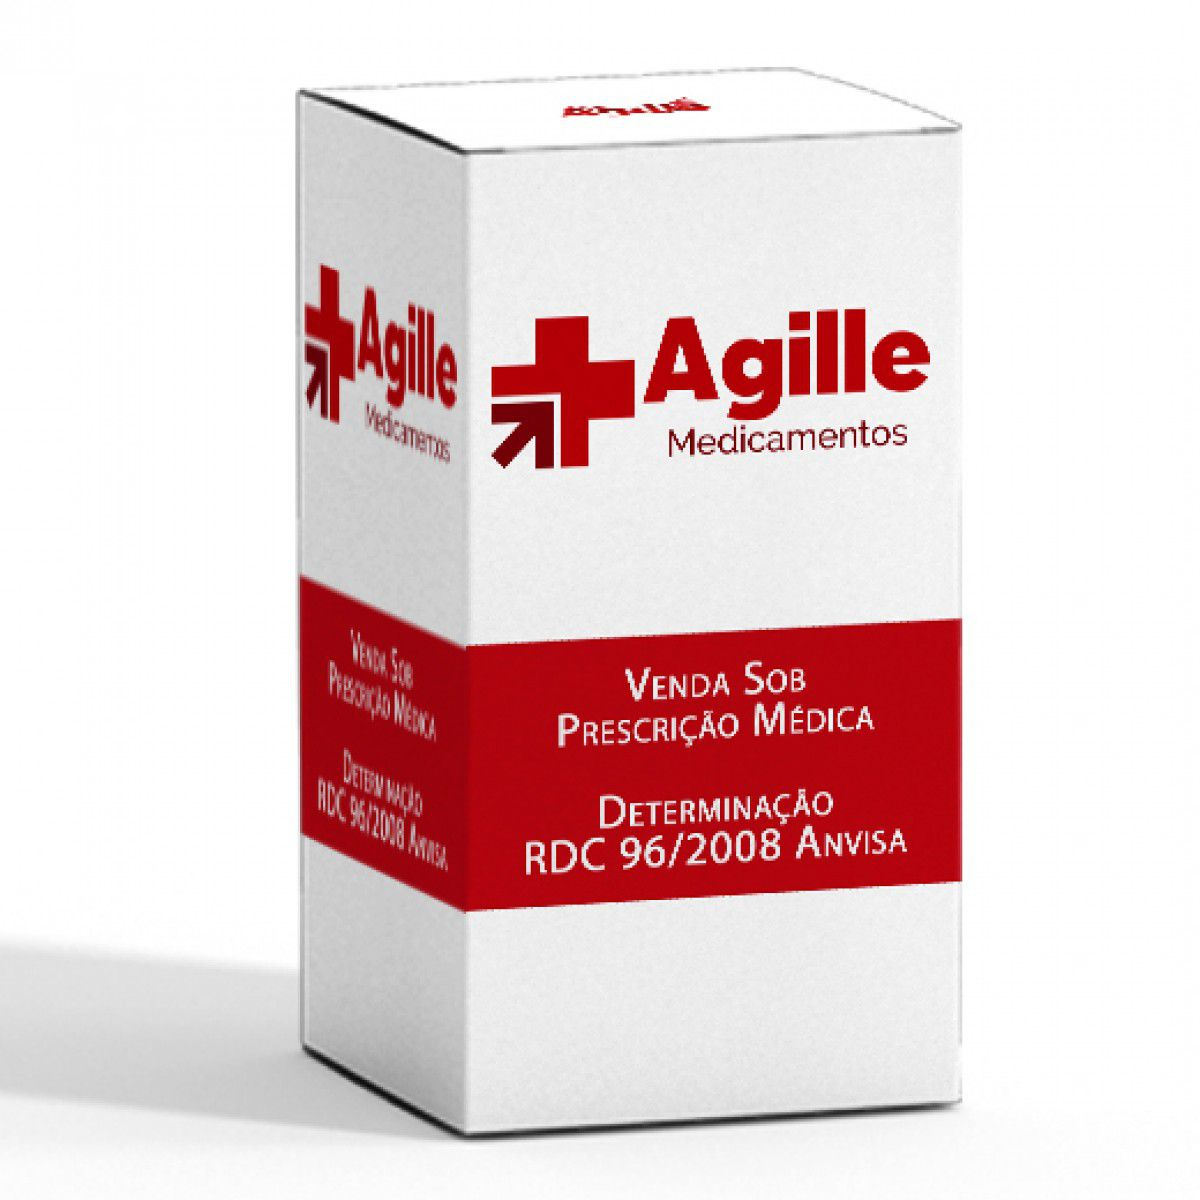 CINACALCETE 30MG 30 COMP. DR.REDDYS  - Agille Speciality